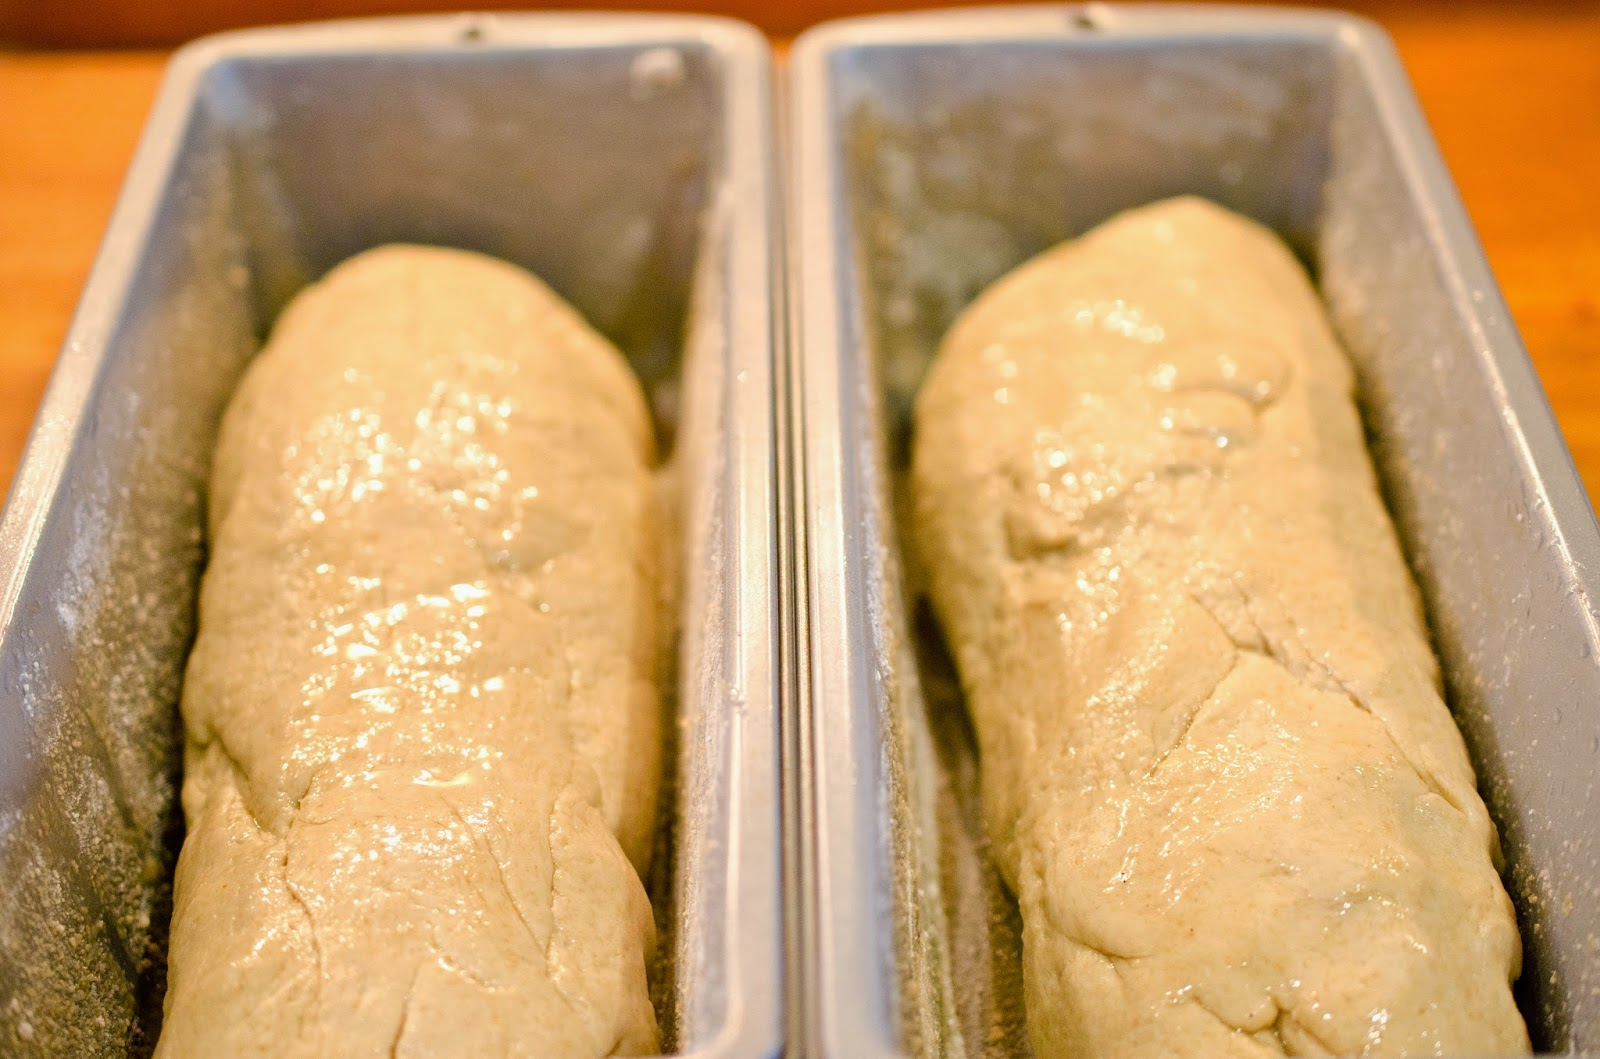 Divide Dough In Half Flatten And Roll Tightly Like A Cinnamon Roll And Place In Prepared Pans Brush With Co Oil Or Canola Oil